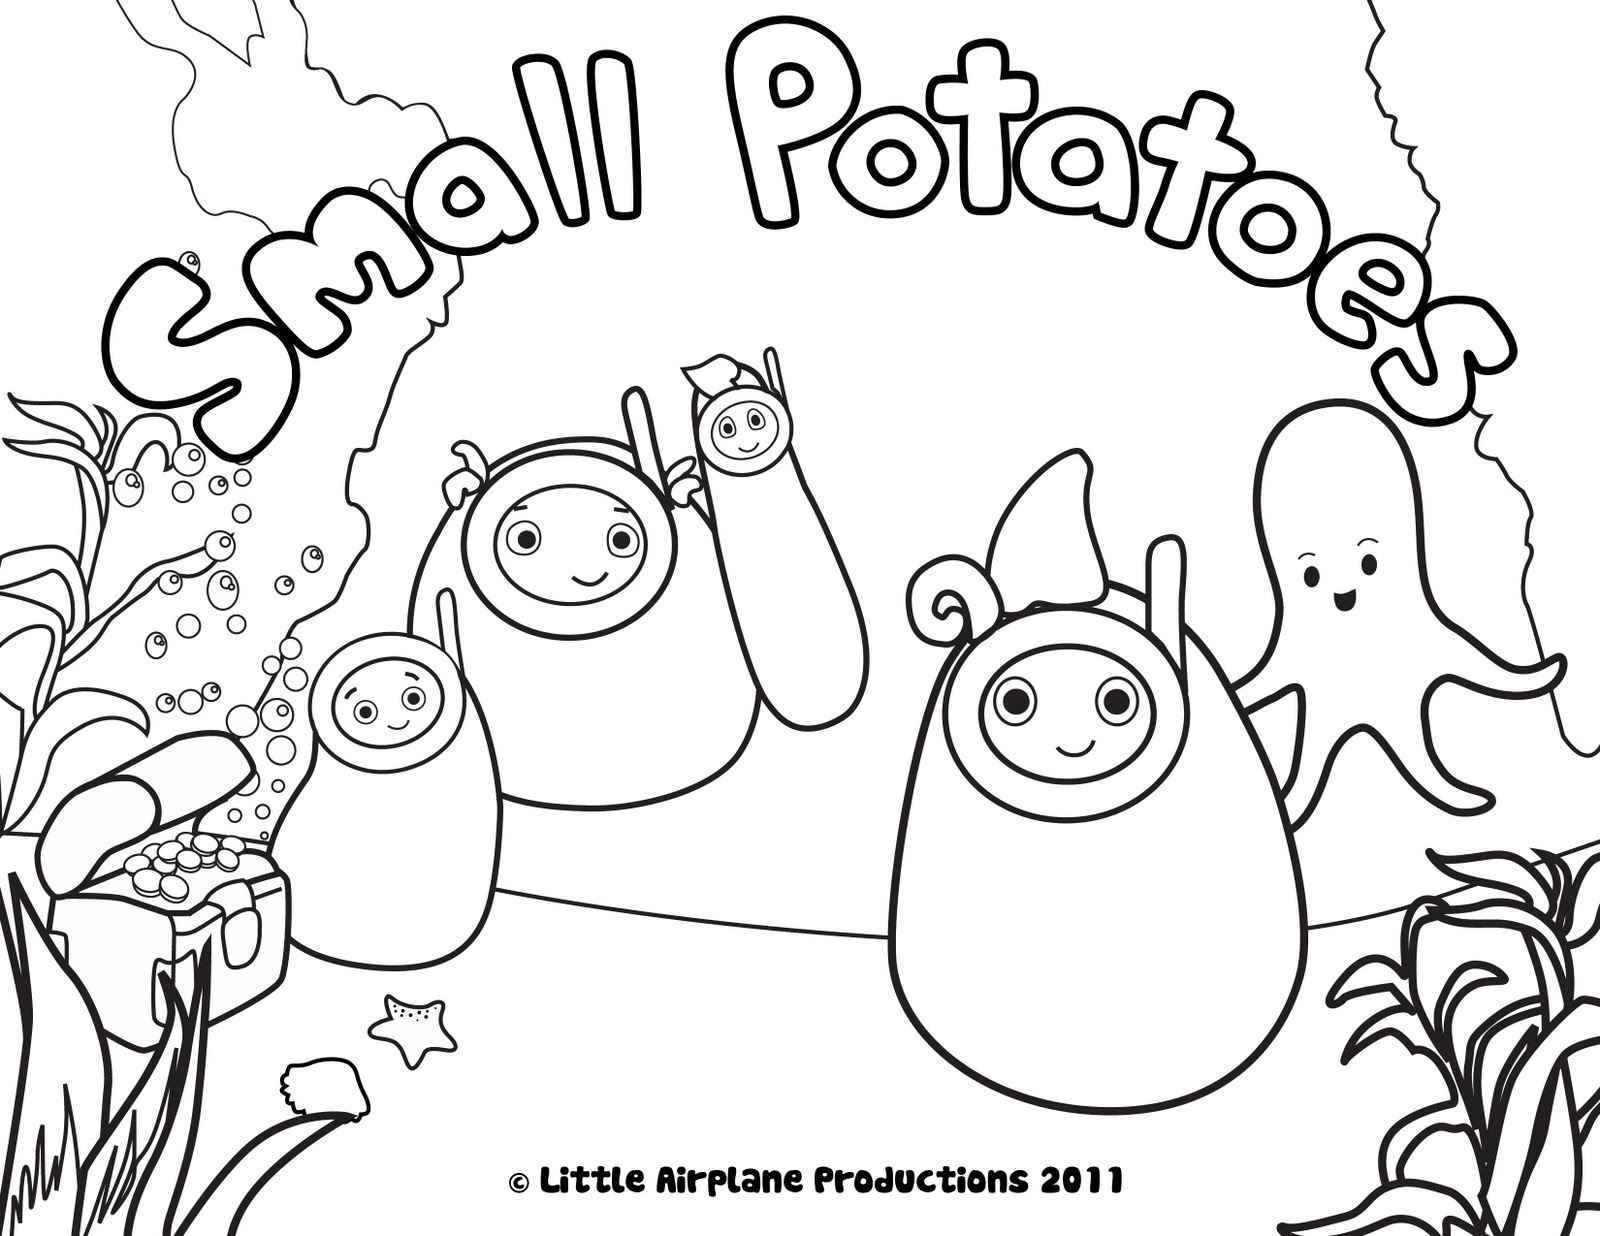 erica kepler: Small Potatoes Coloring Pages!